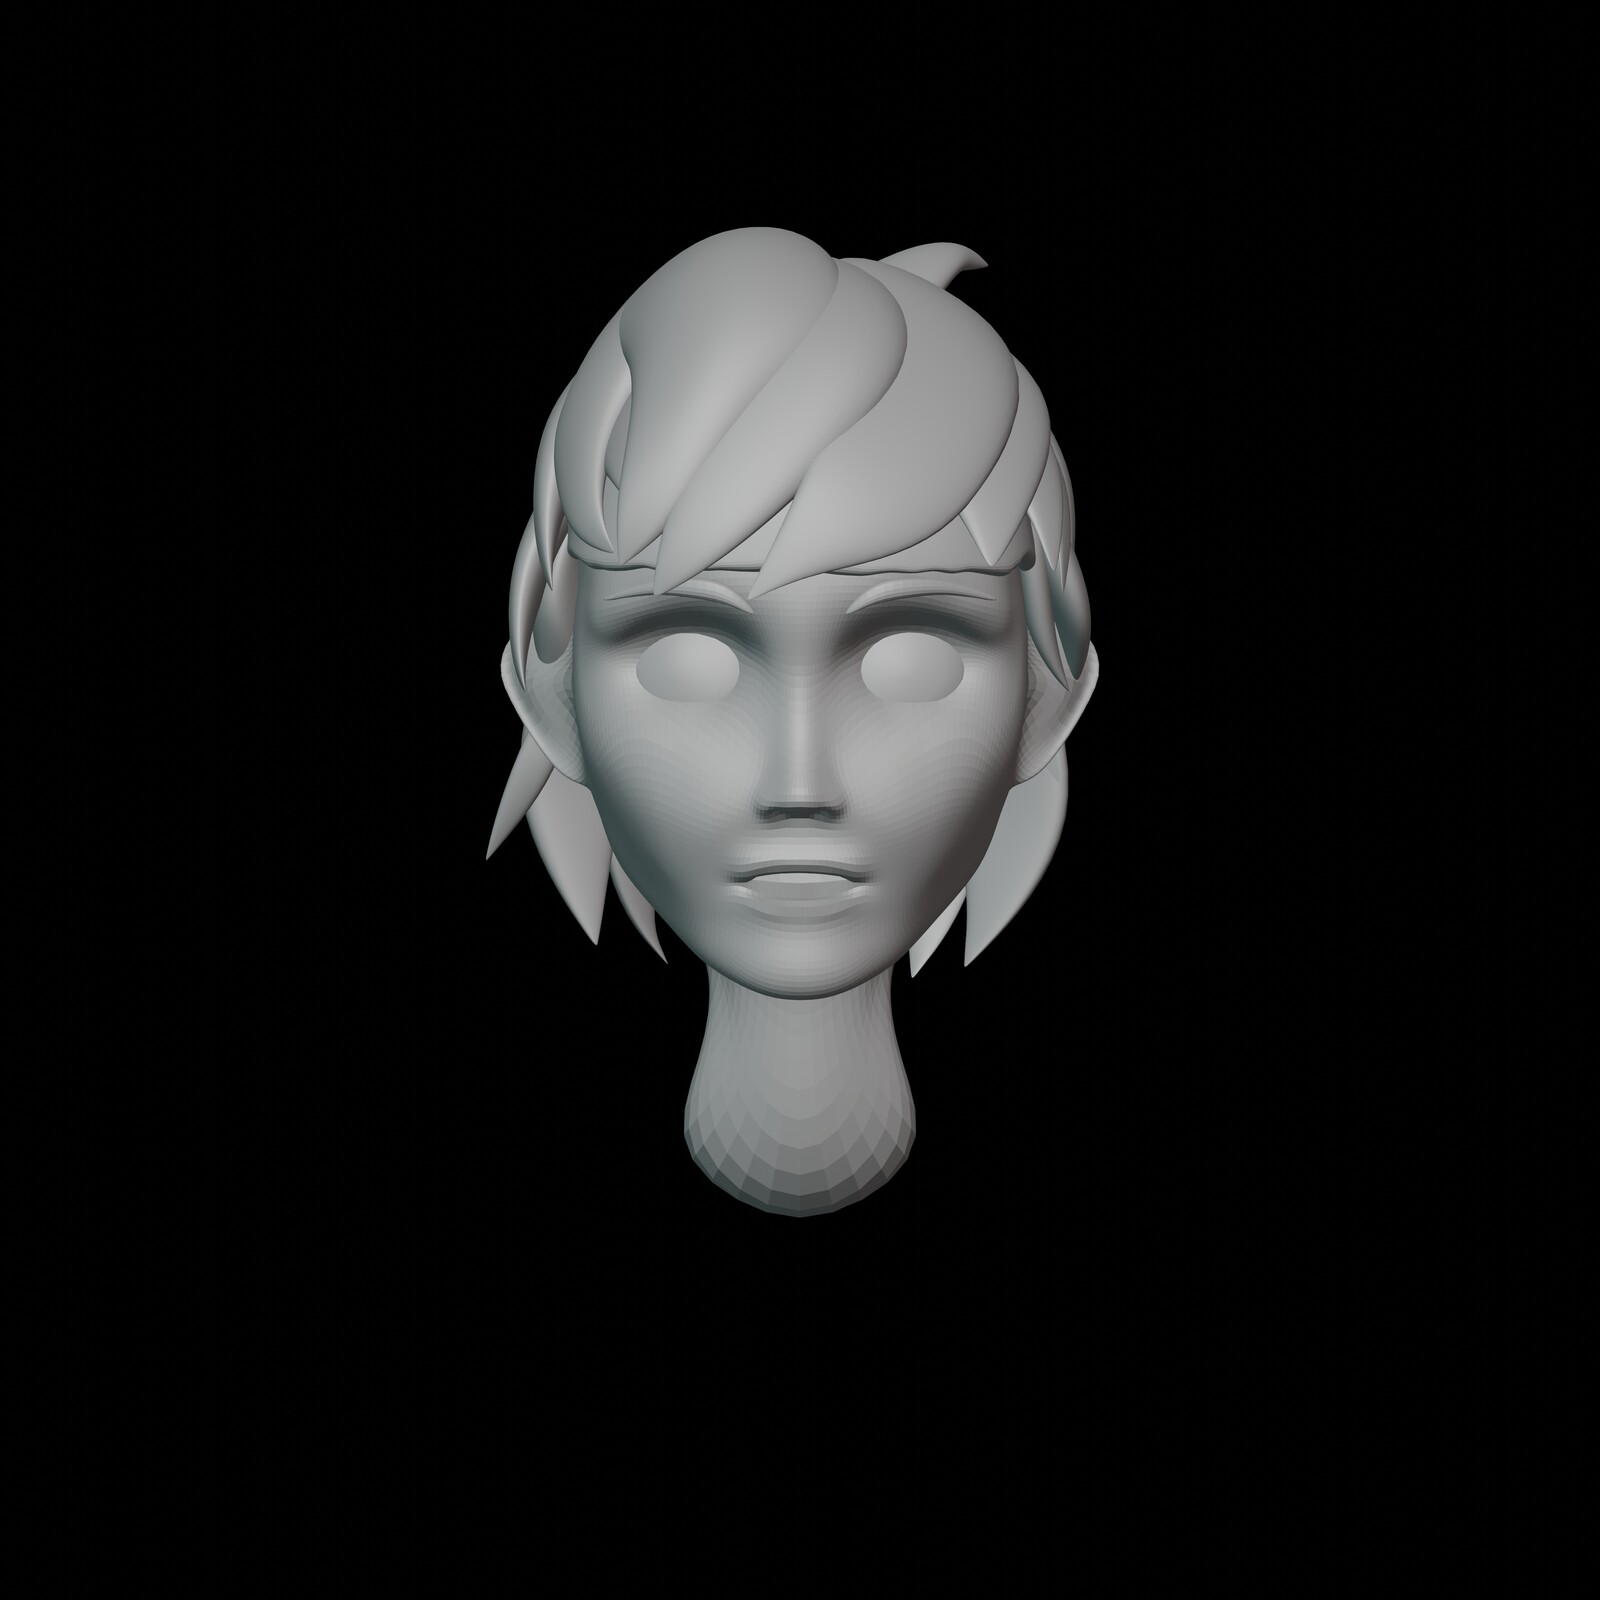 Iteration #5: Again, some slight tweaking in the cheeks, I made it slightly slimmer again. Other than that, I made the facial expression look a bit more natural and changed the shape of the eye